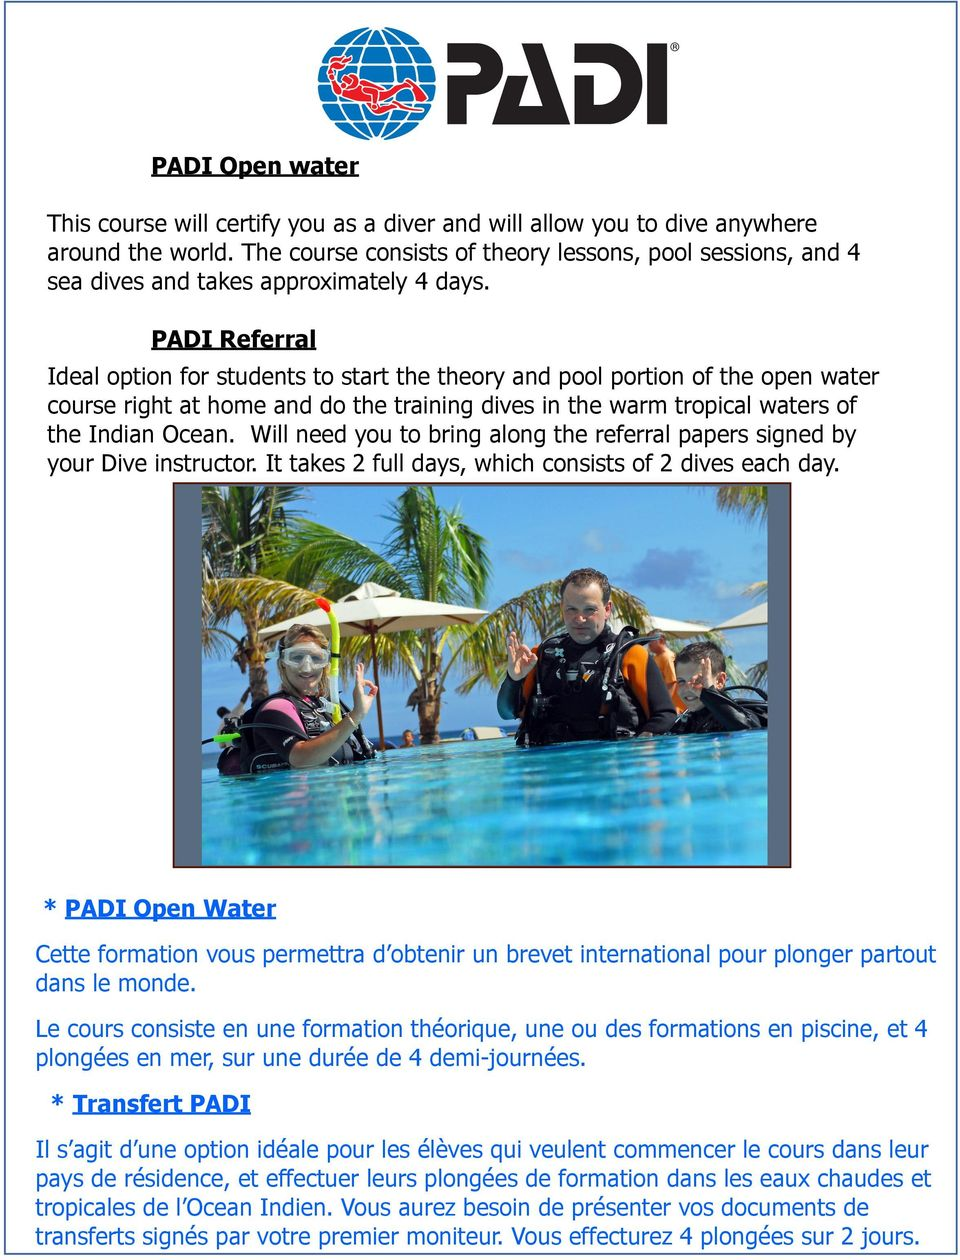 PADI Referral Ideal option for students to start the theory and pool portion of the open water course right at home and do the training dives in the warm tropical waters of the Indian Ocean.